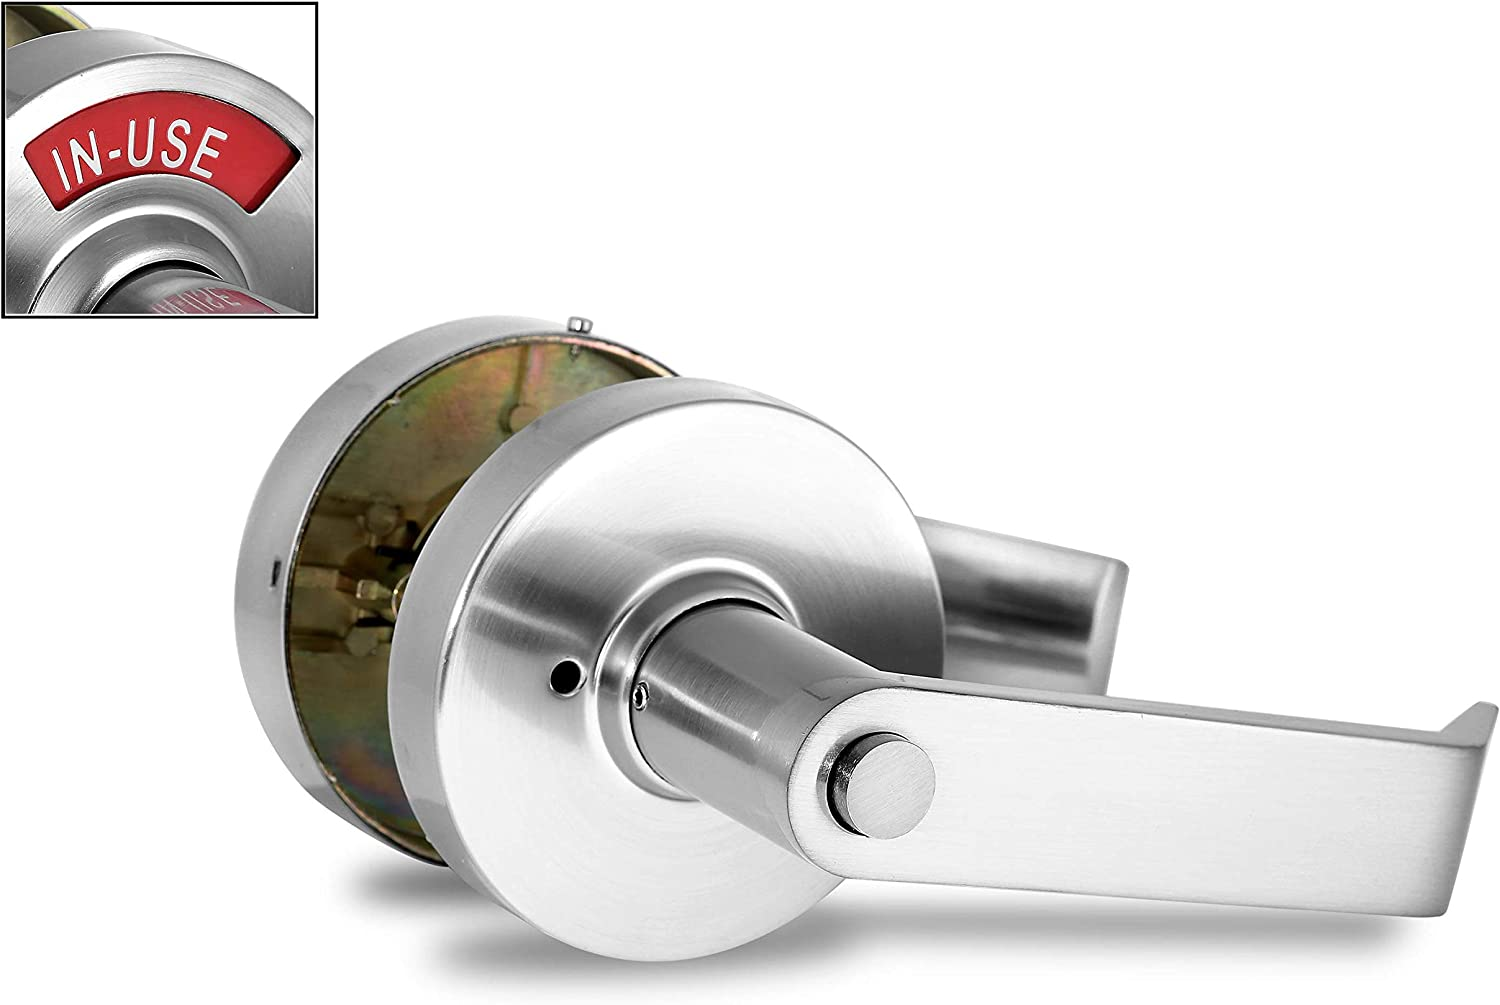 Antique Brass VIZILOK Privacy Indicator Lock C3FB Commercial Grade Left Right Reversible in-USE or Vacant Occupancy Indicator Stainless Steel Lock and Lever